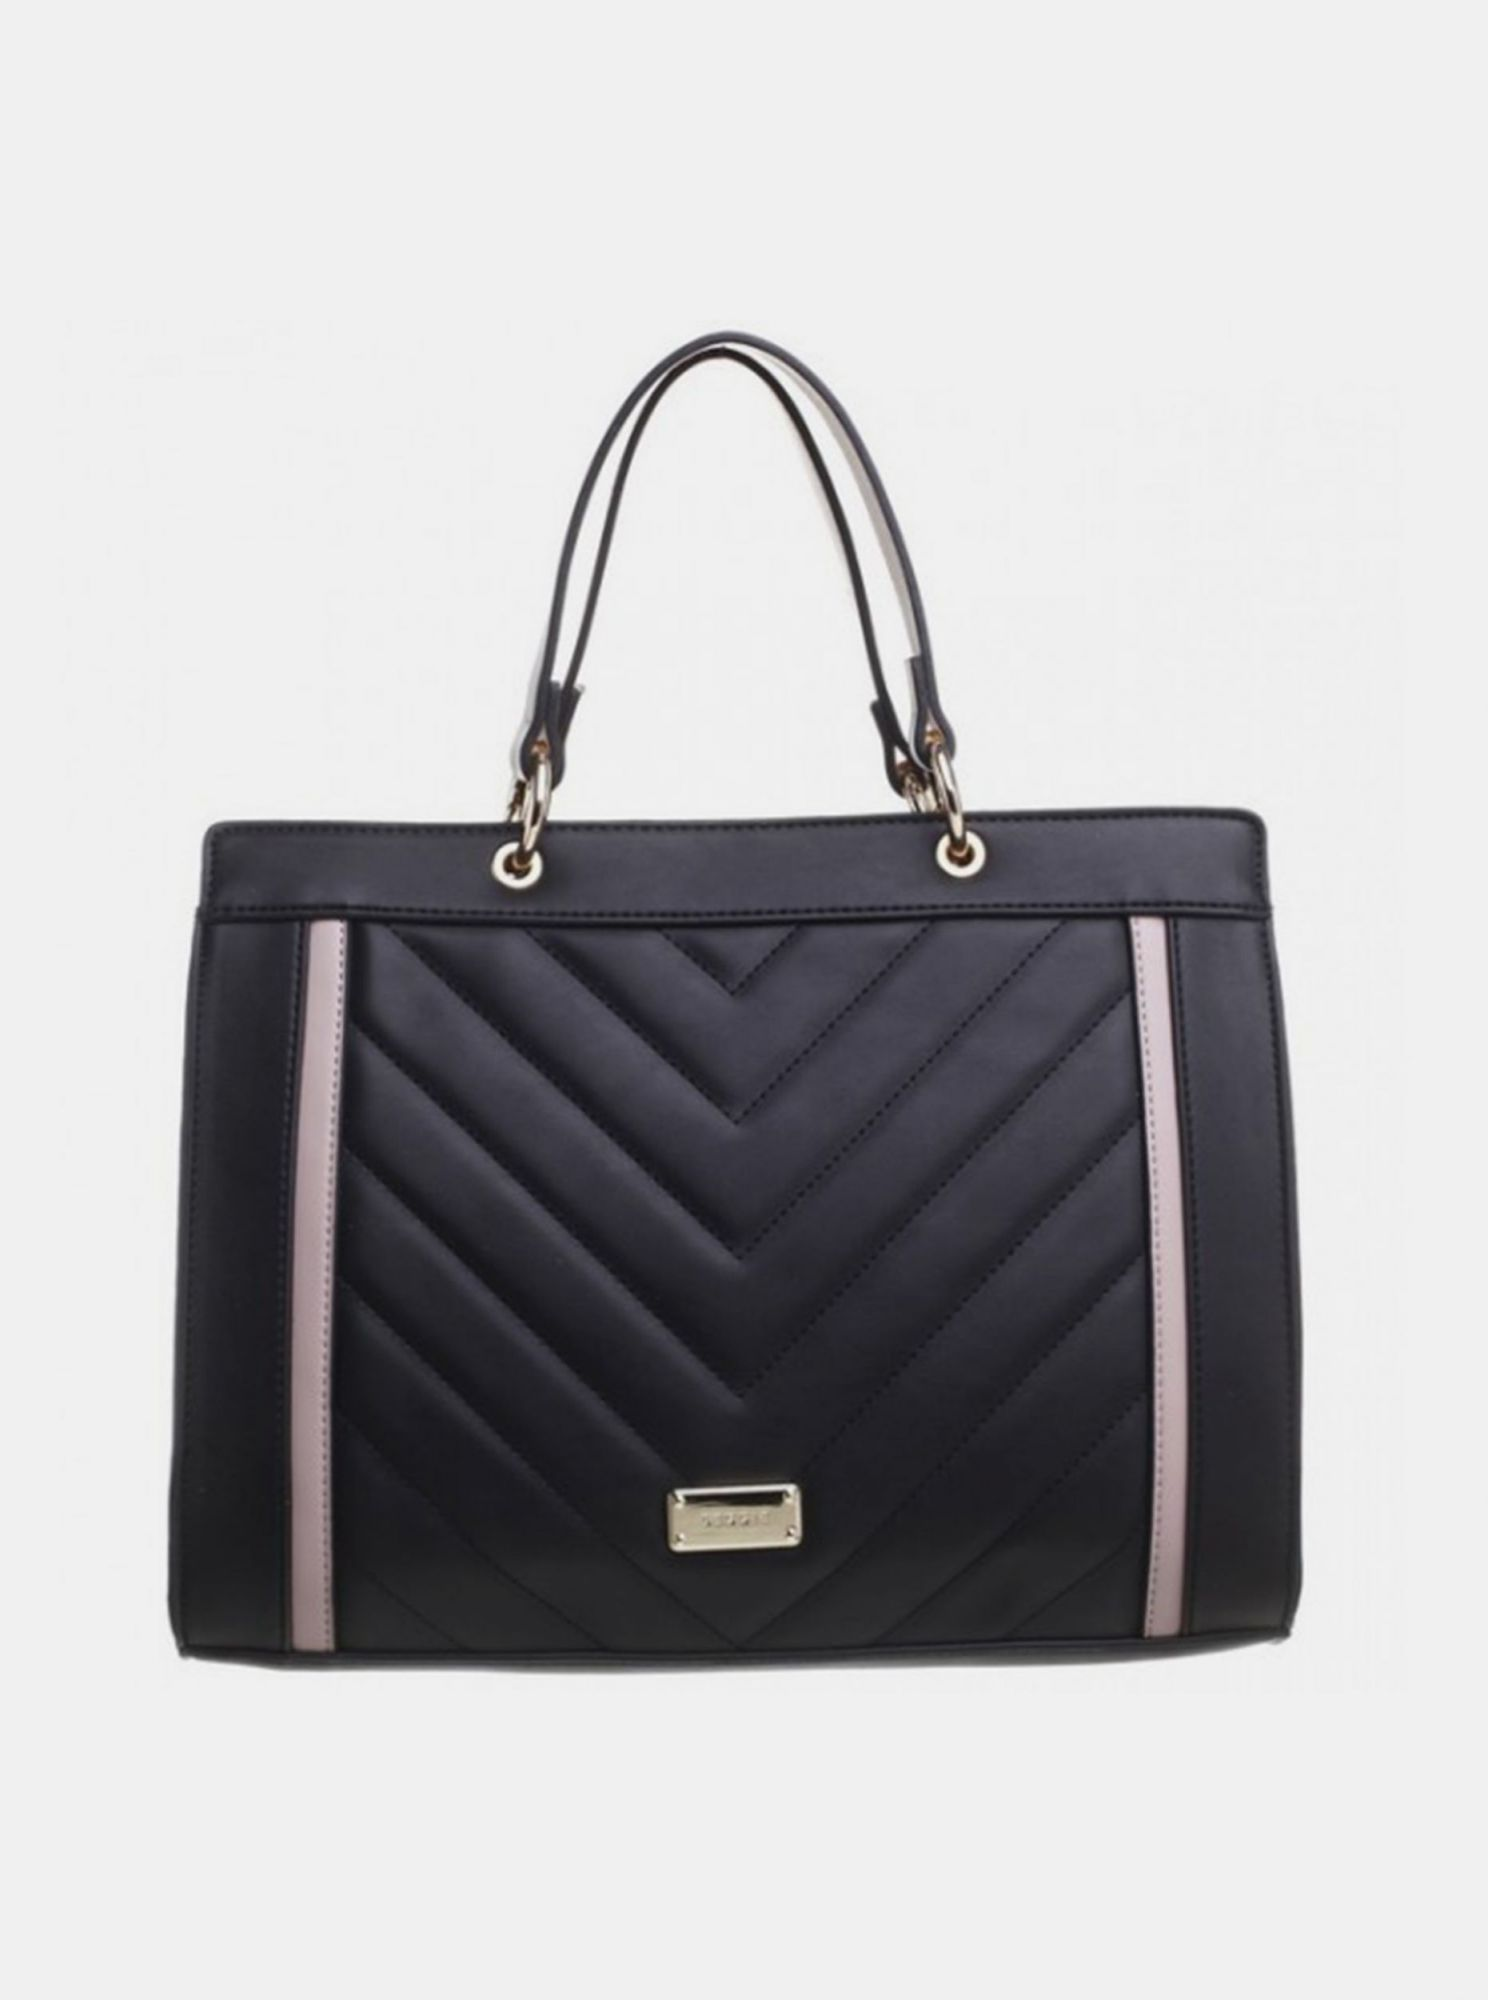 Black Bessie London handbag